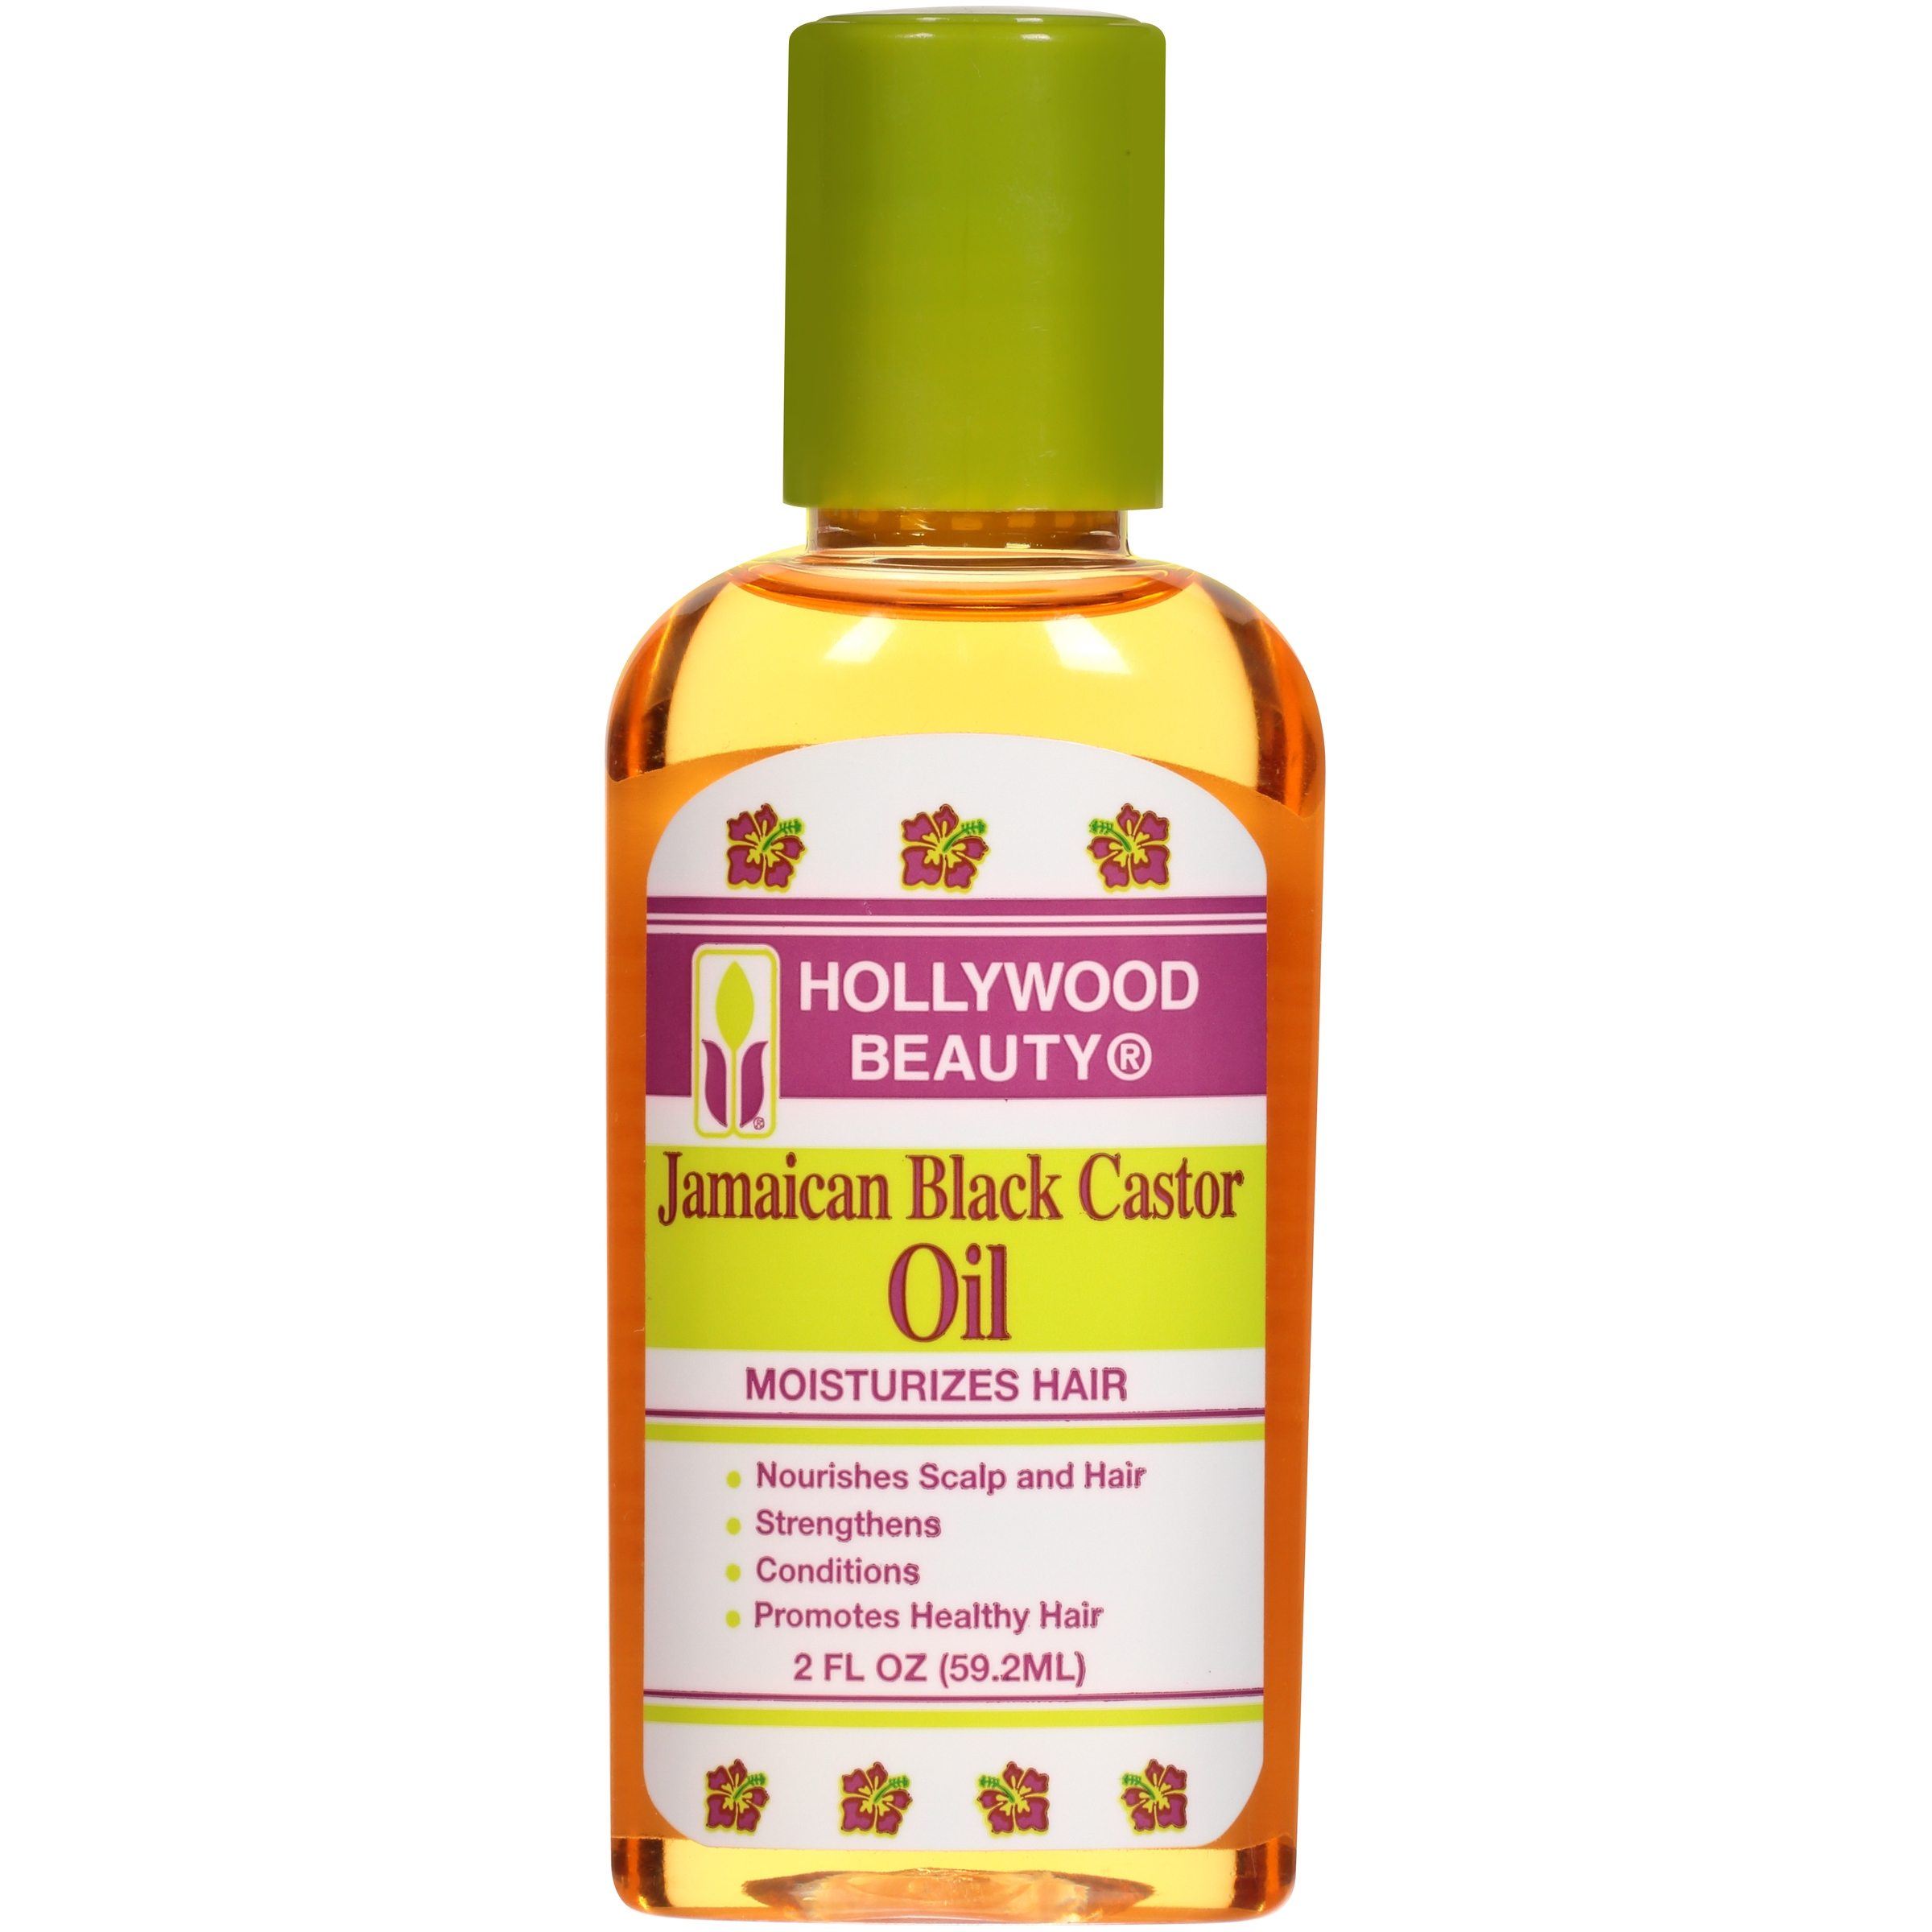 hollywood beauty jamaican black castor oil review